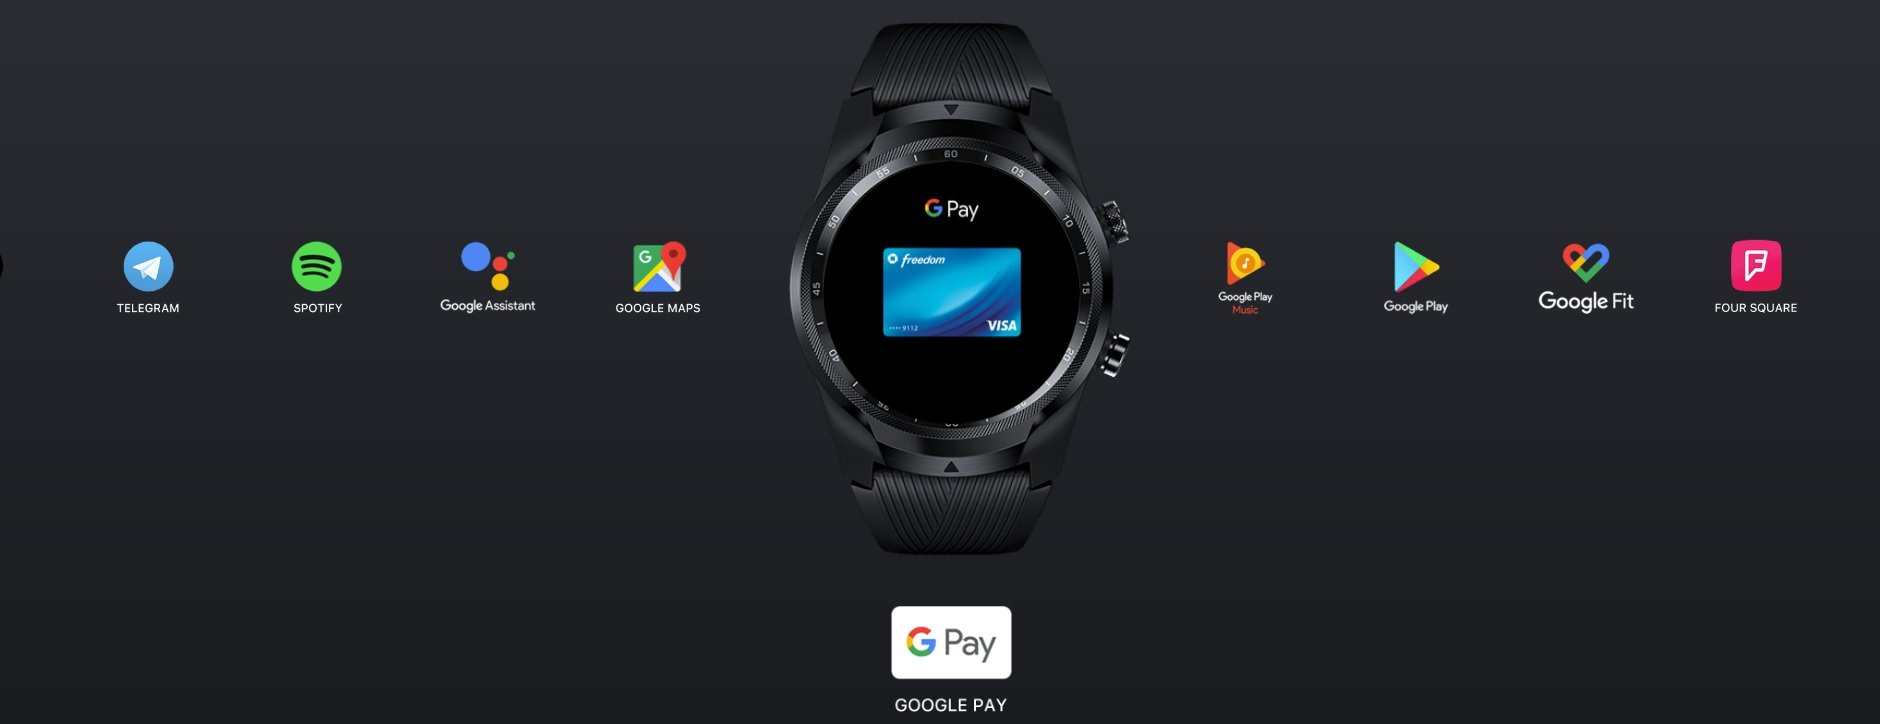 Mobvoi TicWatch Pro 4G LTE Google Pay